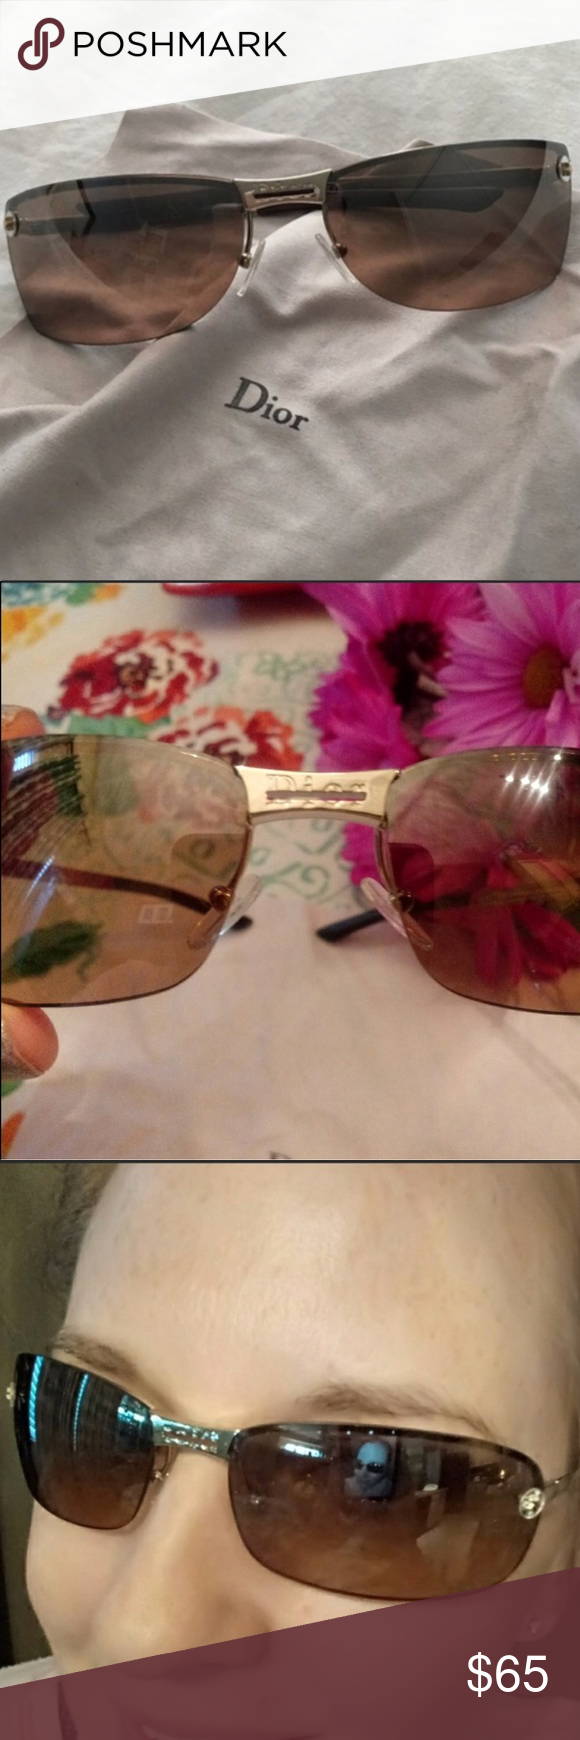 37f66c2d7d9f0 Dior VGUC ADIORABLE 3YGG4 Bronze Gold Sunglasses These beautiful AUTHENTIC Christian  Dior ADIORABLE 3YGG4 sunglasses